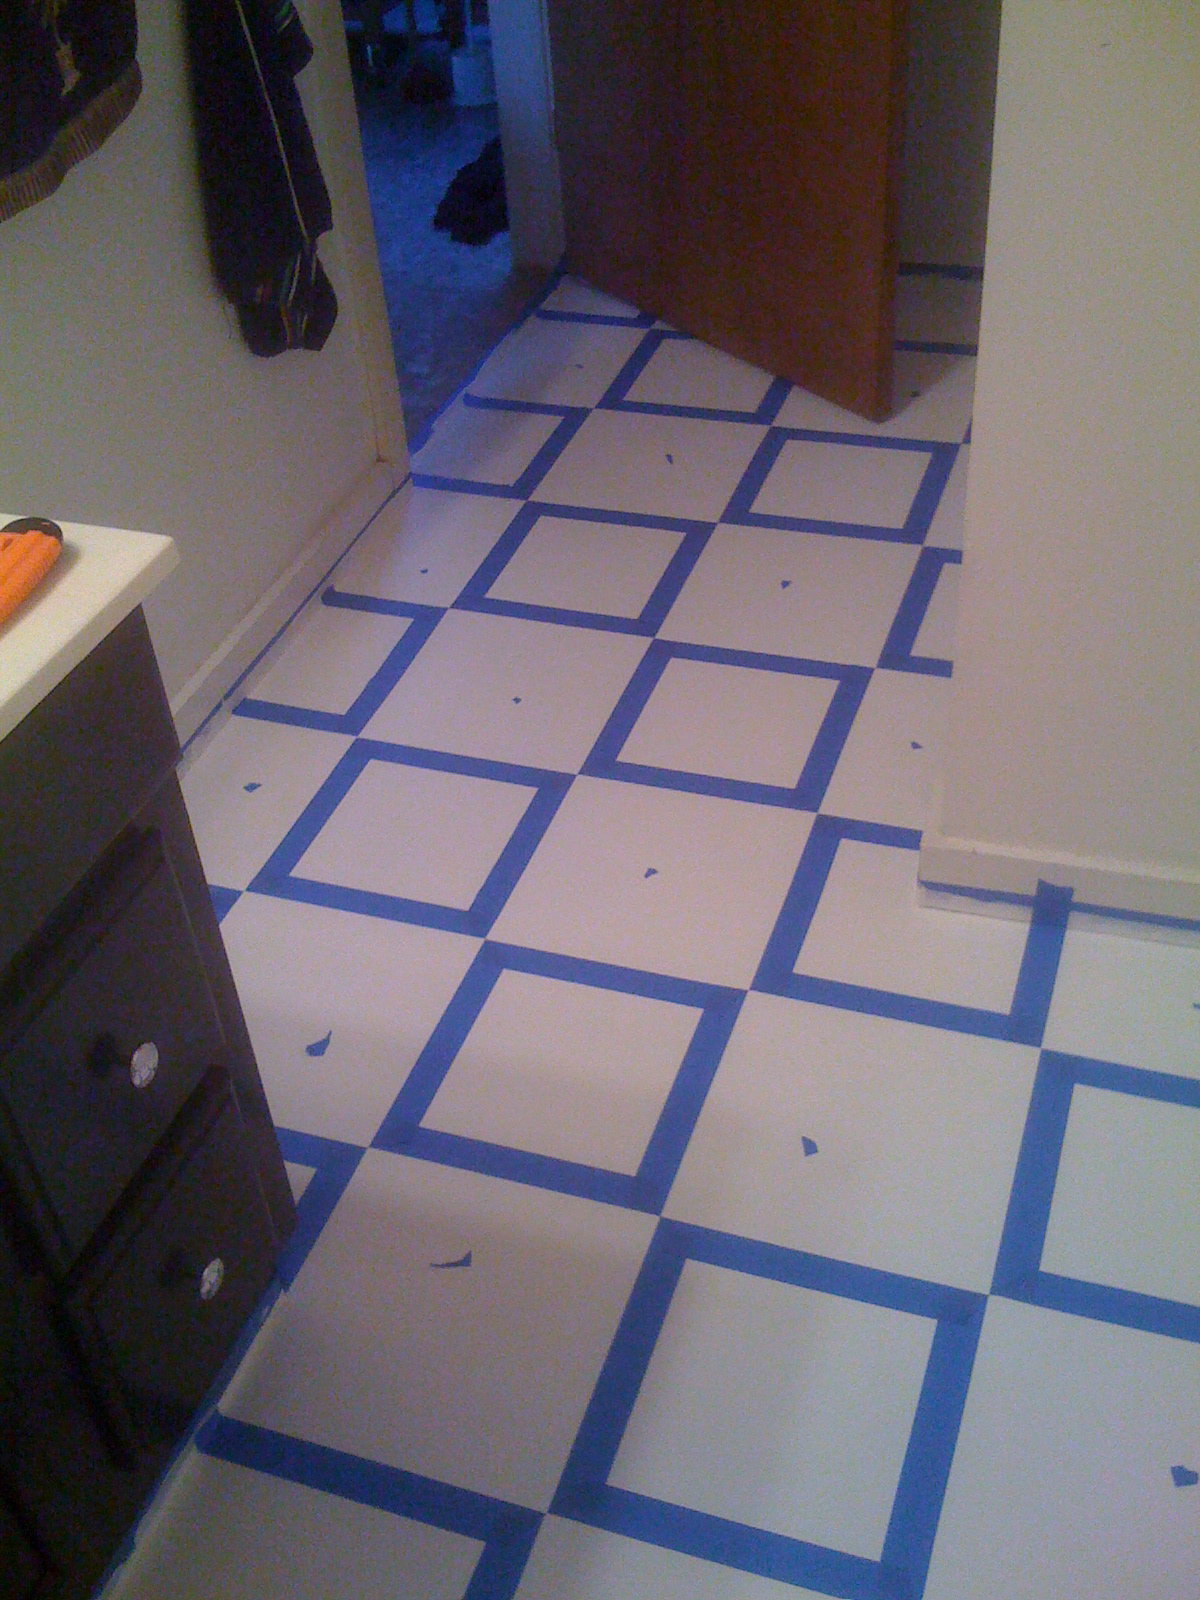 Diy painting old vinyl floor tiles mary wiseman designs step 7 painting the black dailygadgetfo Image collections